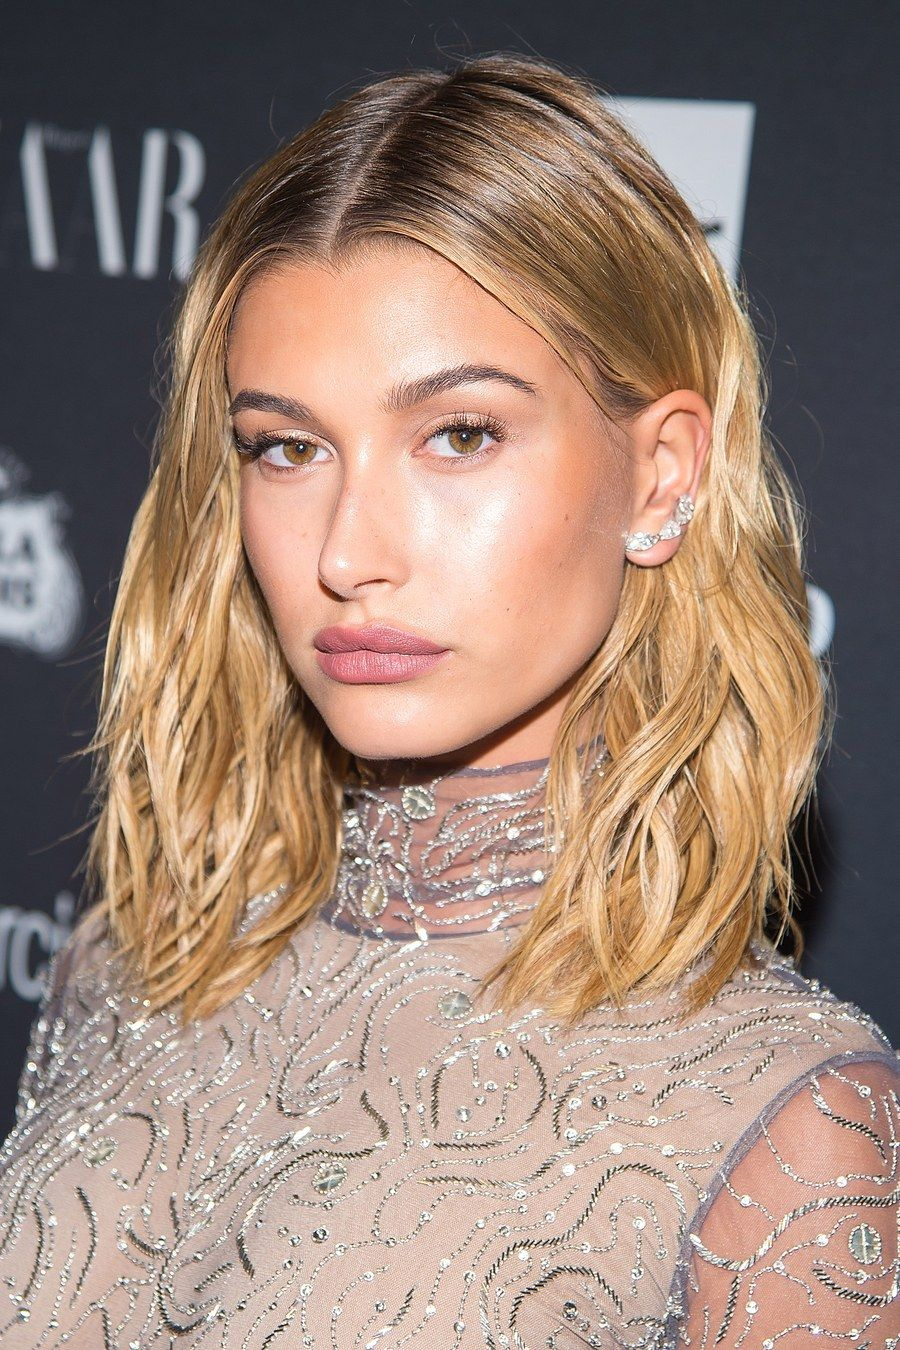 Hailey Baldwin Beauty Evolution – Hailey Baldwin Red Carpet Beauty Looks | Teen Vogue